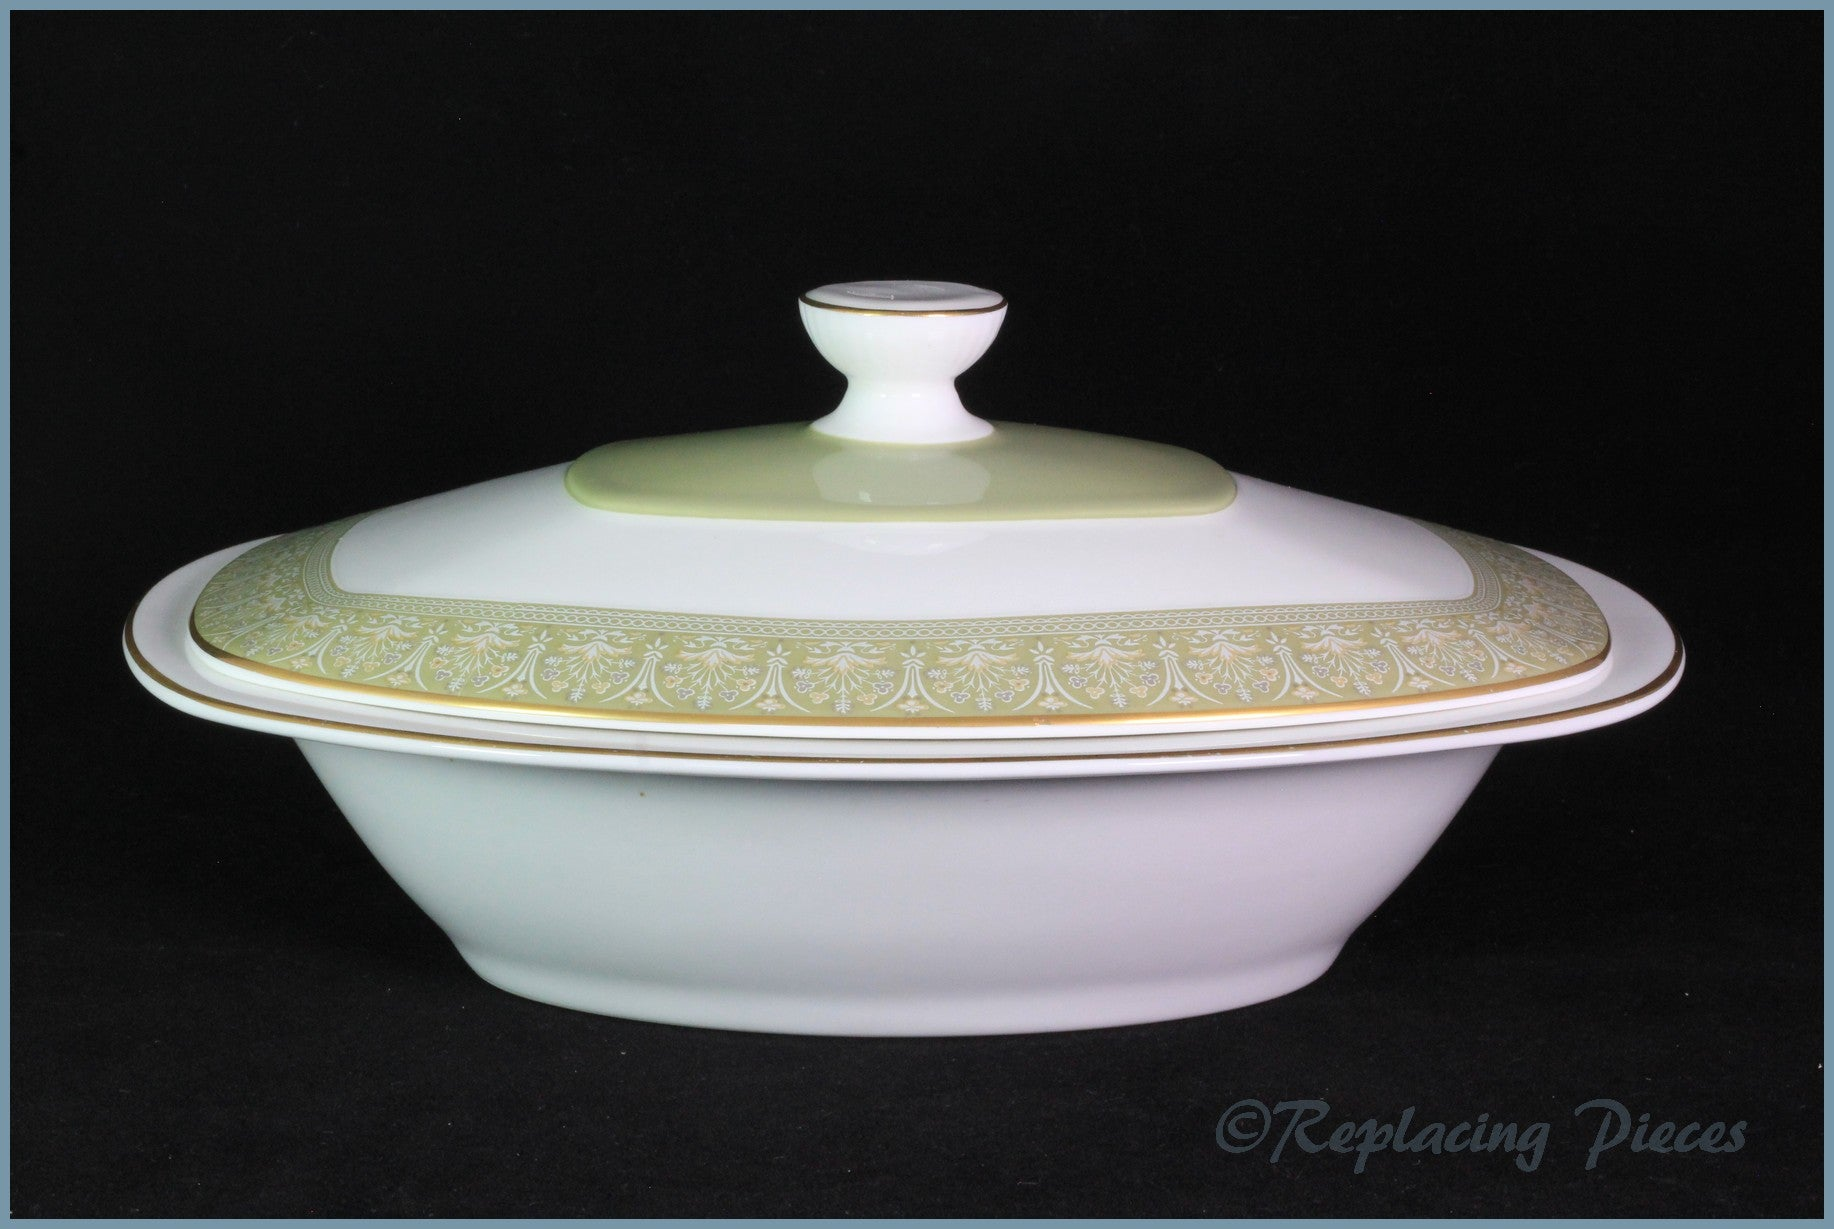 Royal Doulton - Sonnet (H5012) - Lidded Vegetable Dish